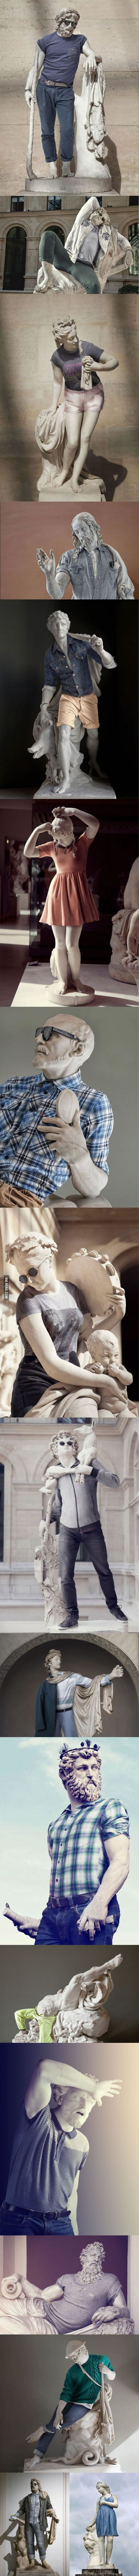 Ancient Greek sculptures dressed up in hipster clothing.  Not only is this funny, but I'm actually looking at some of what they are wearing as costume ideas!